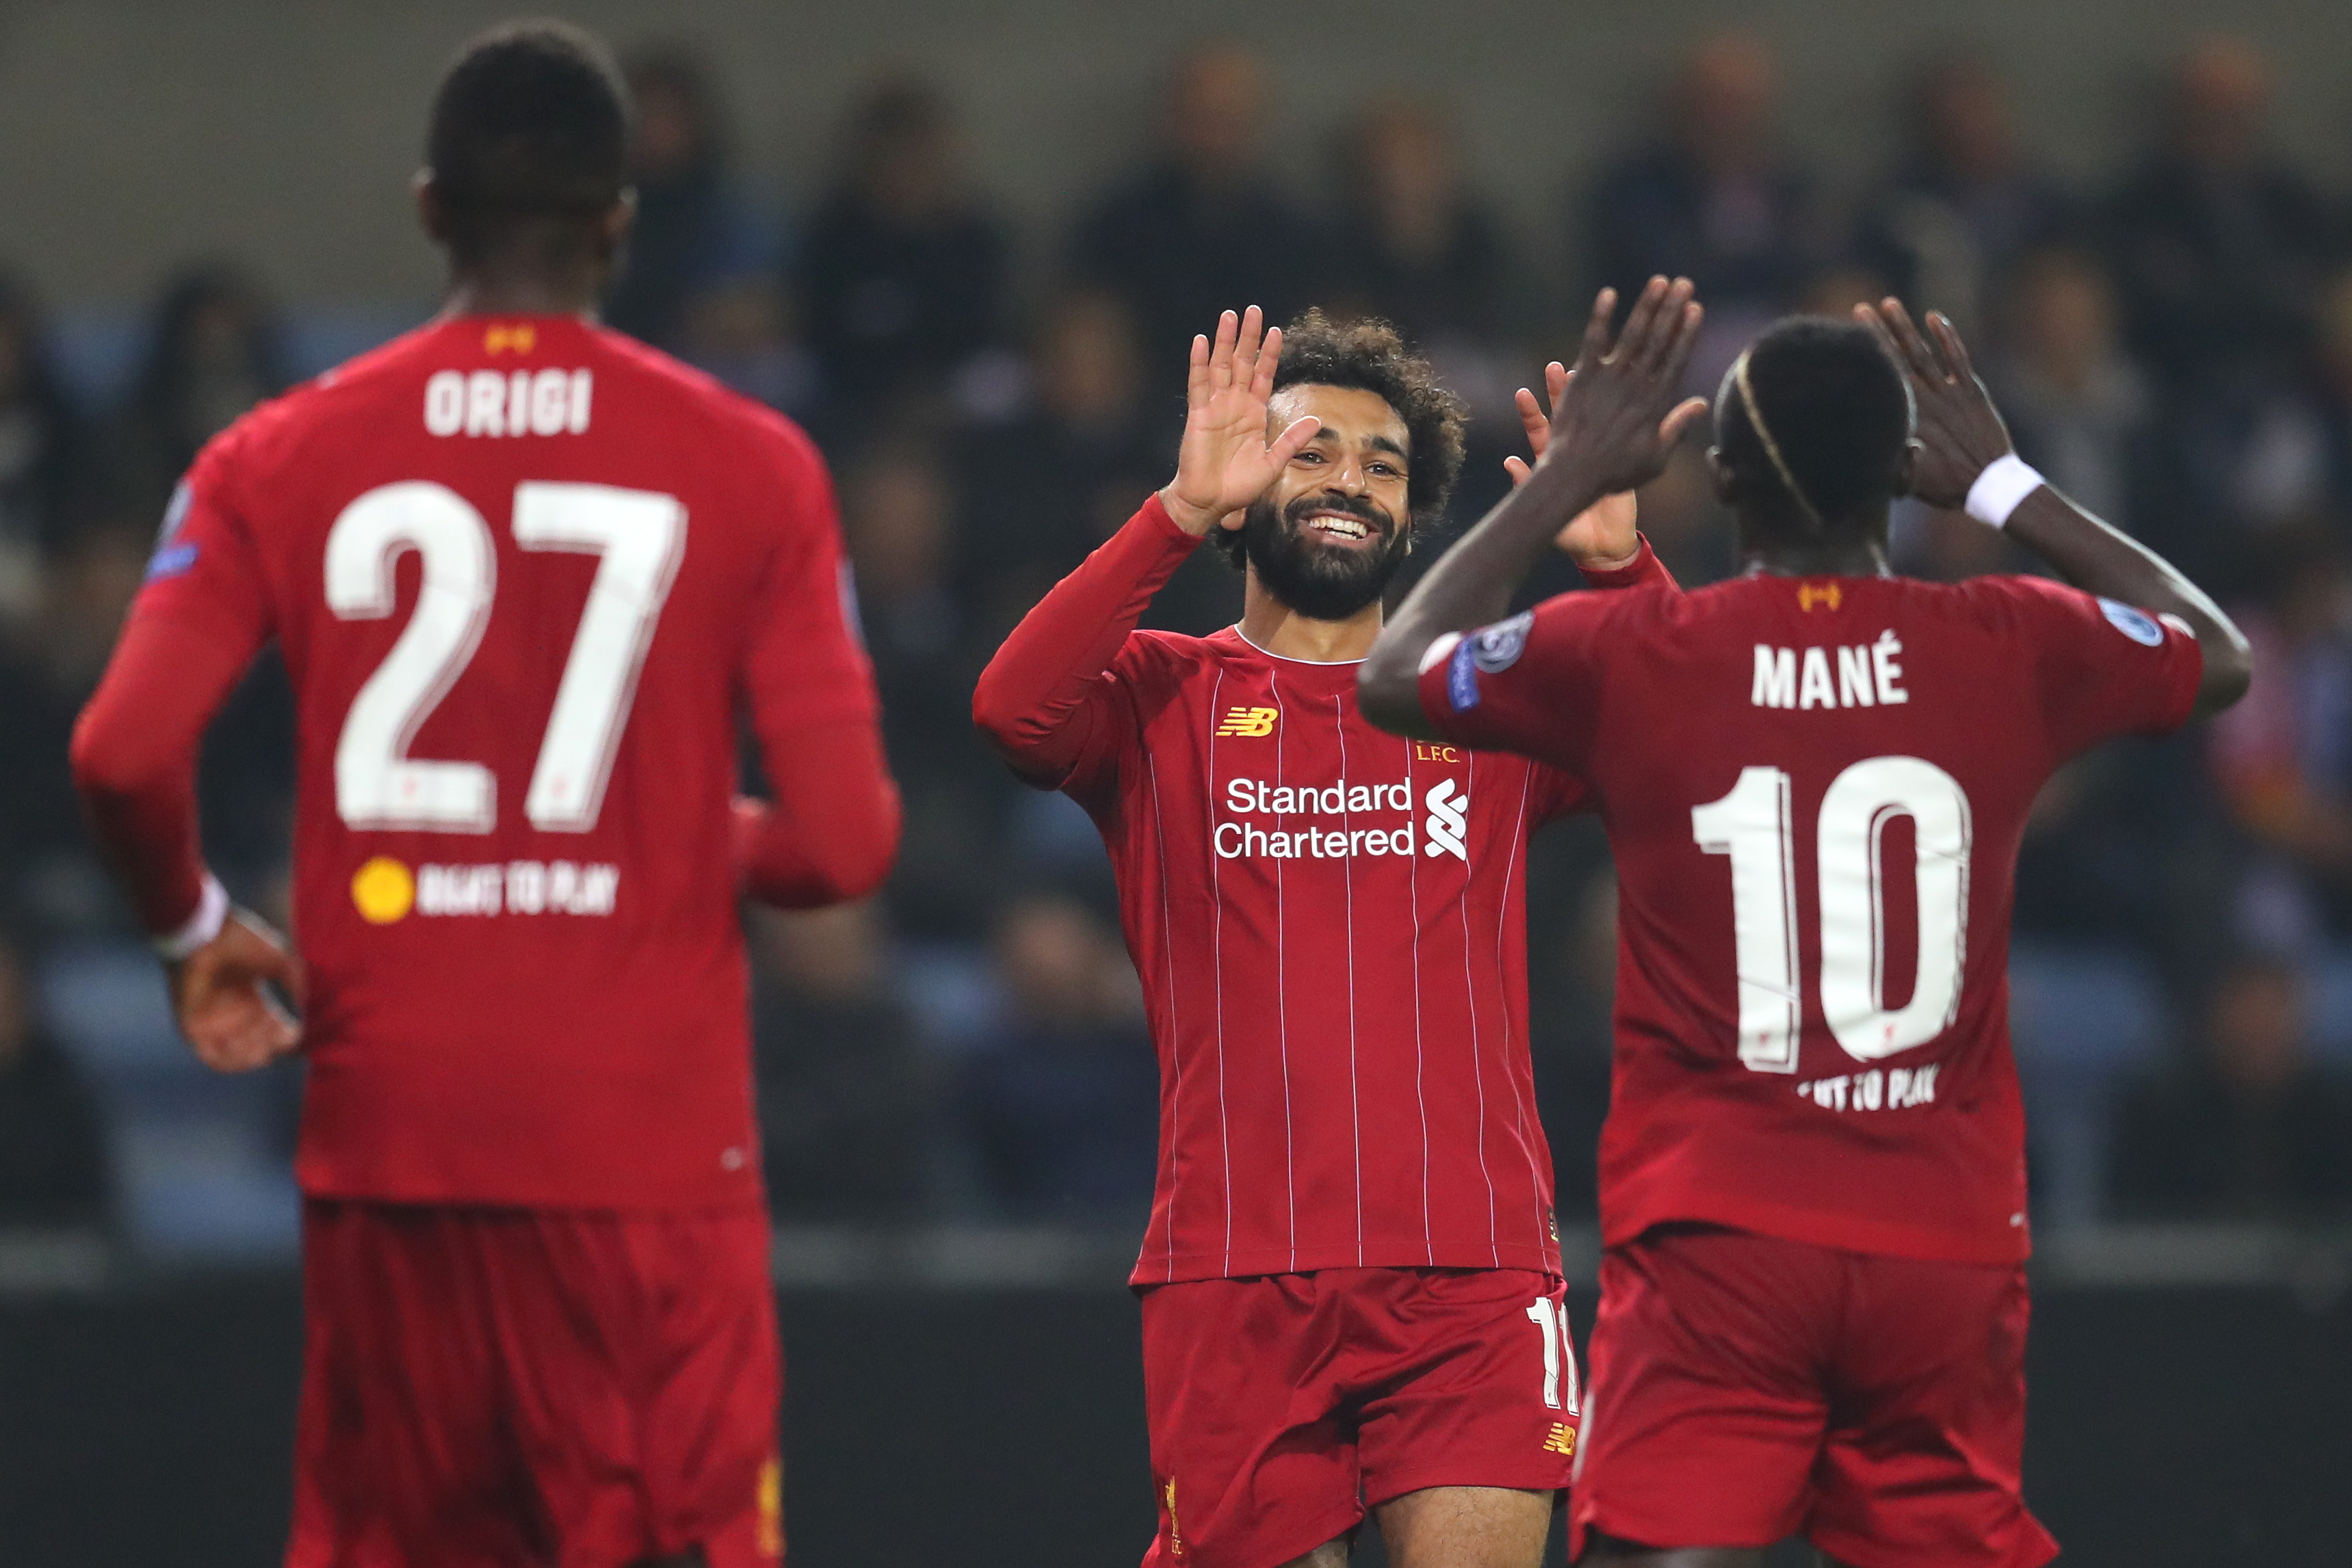 Mo Salah celebrates scoring Liverpool's fourth goal.